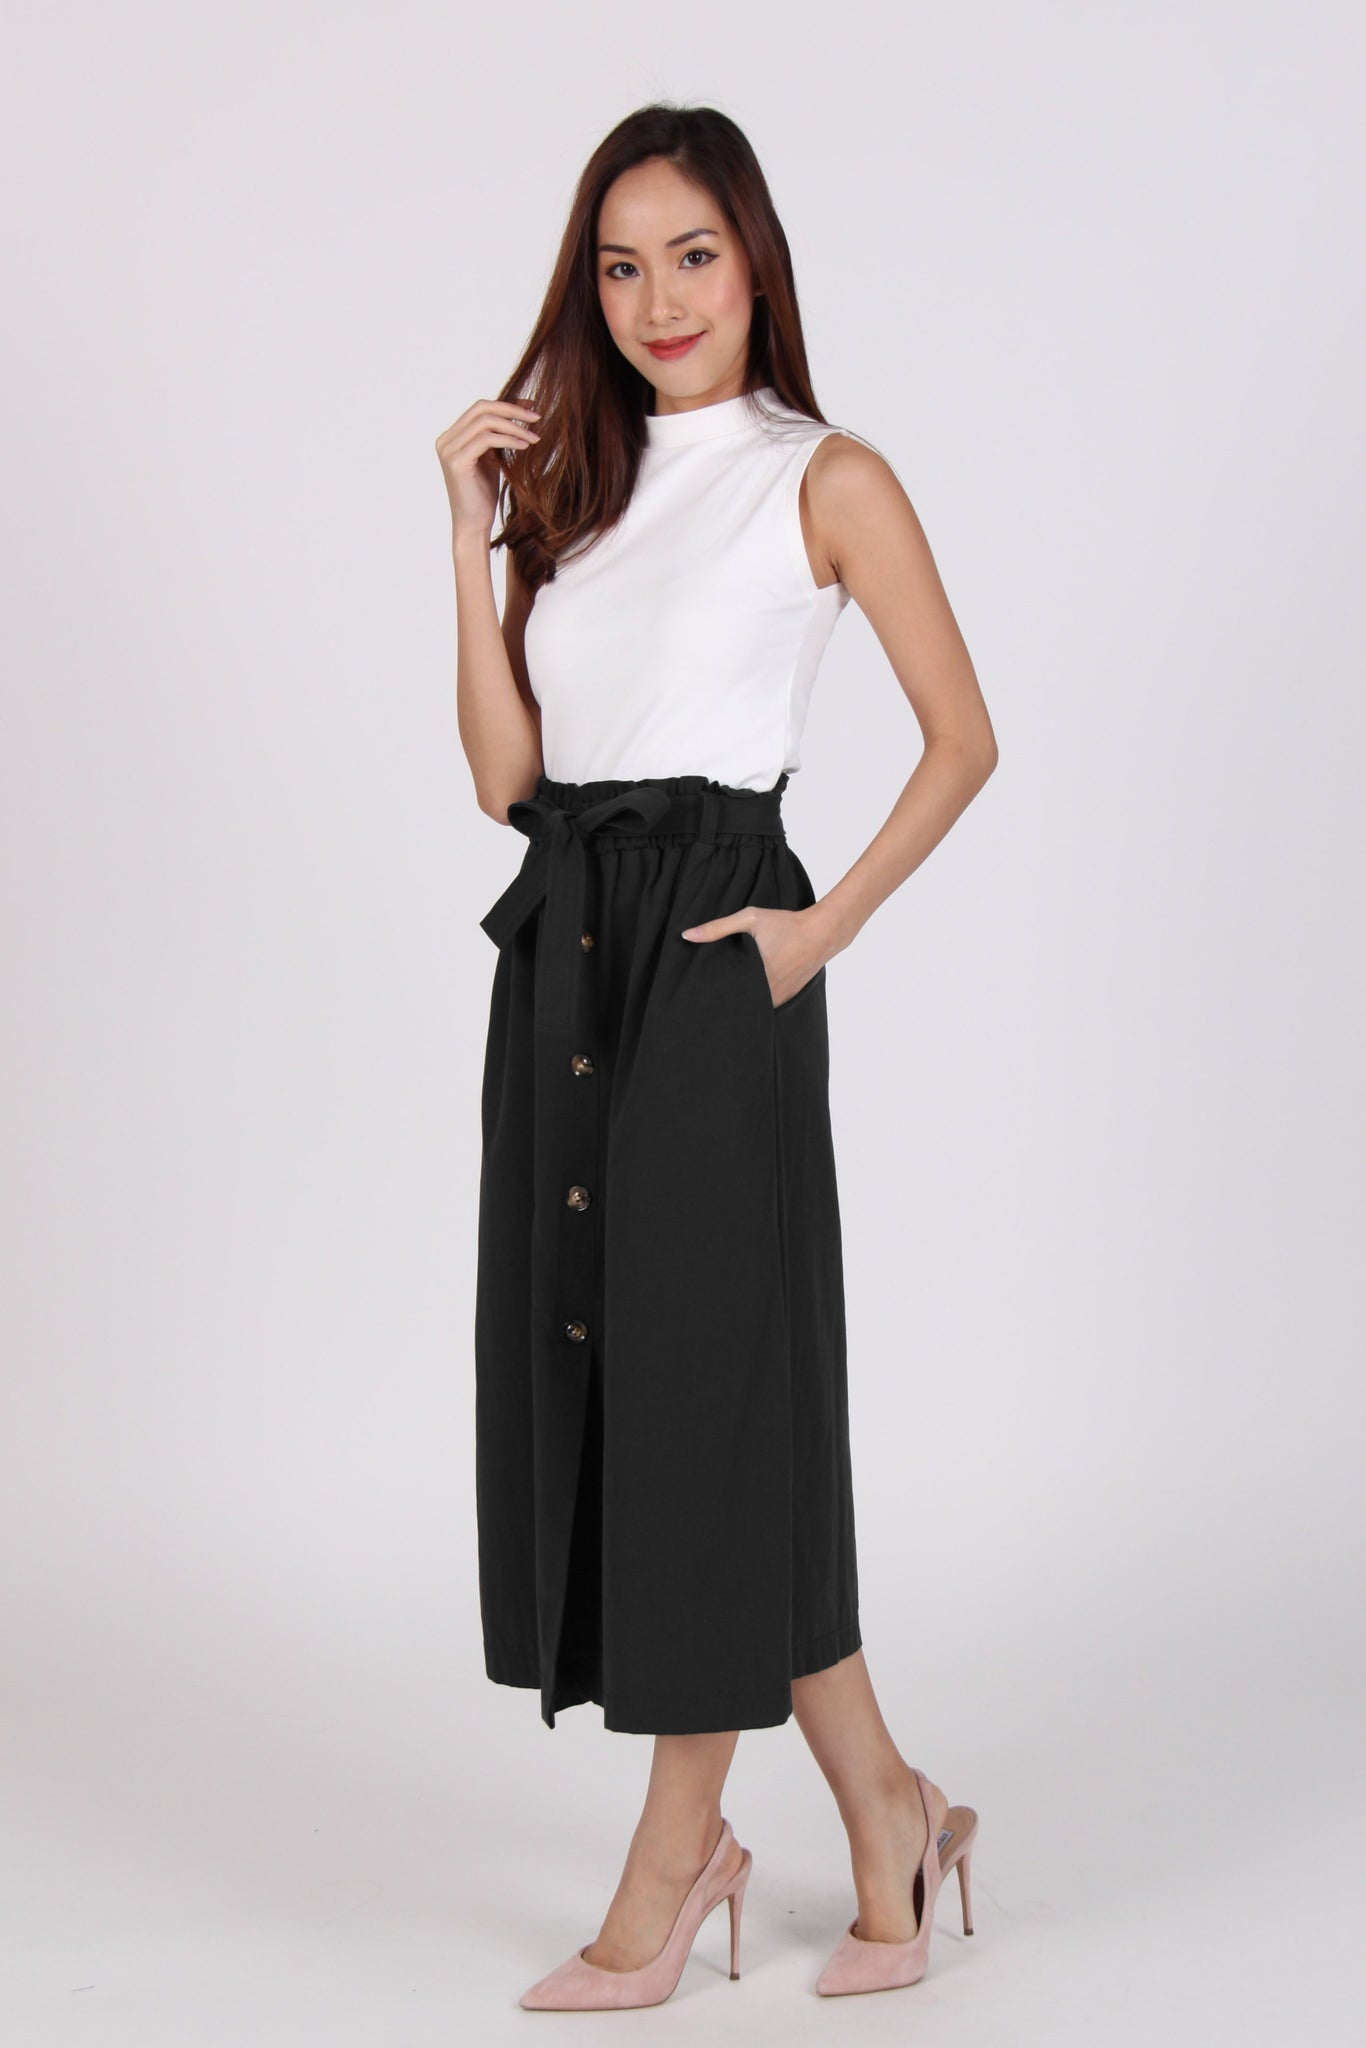 High Waist Ribbon Midi Skirt In Black